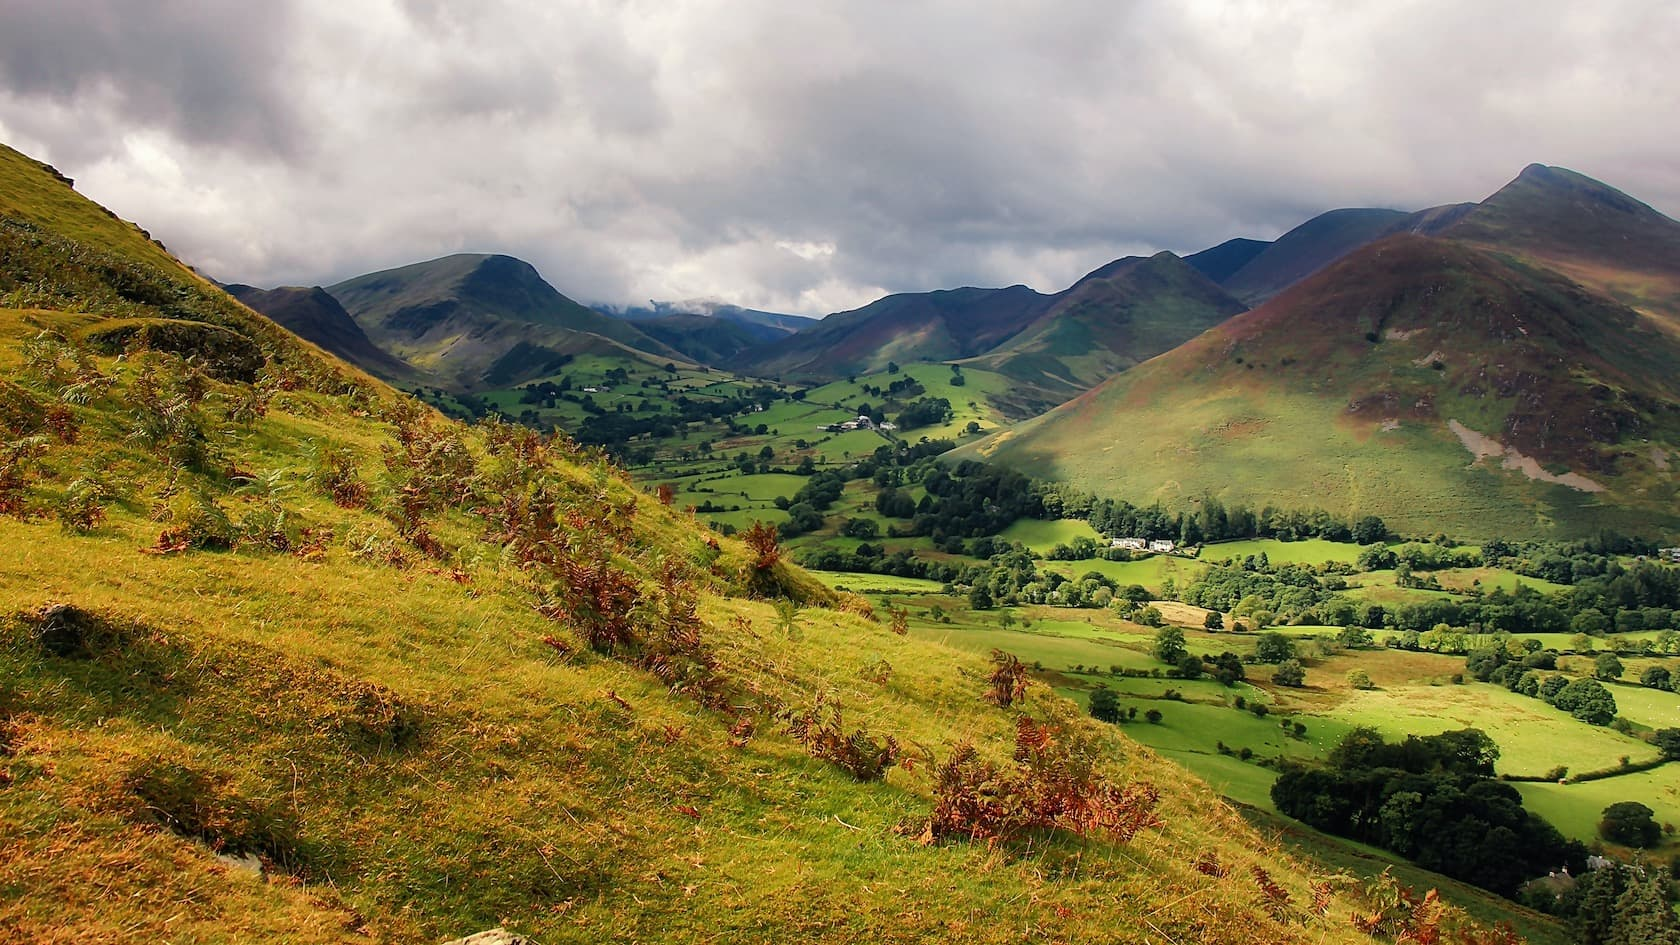 The view of the Newlands valley, looking northeast from the slopes of Cat Bells